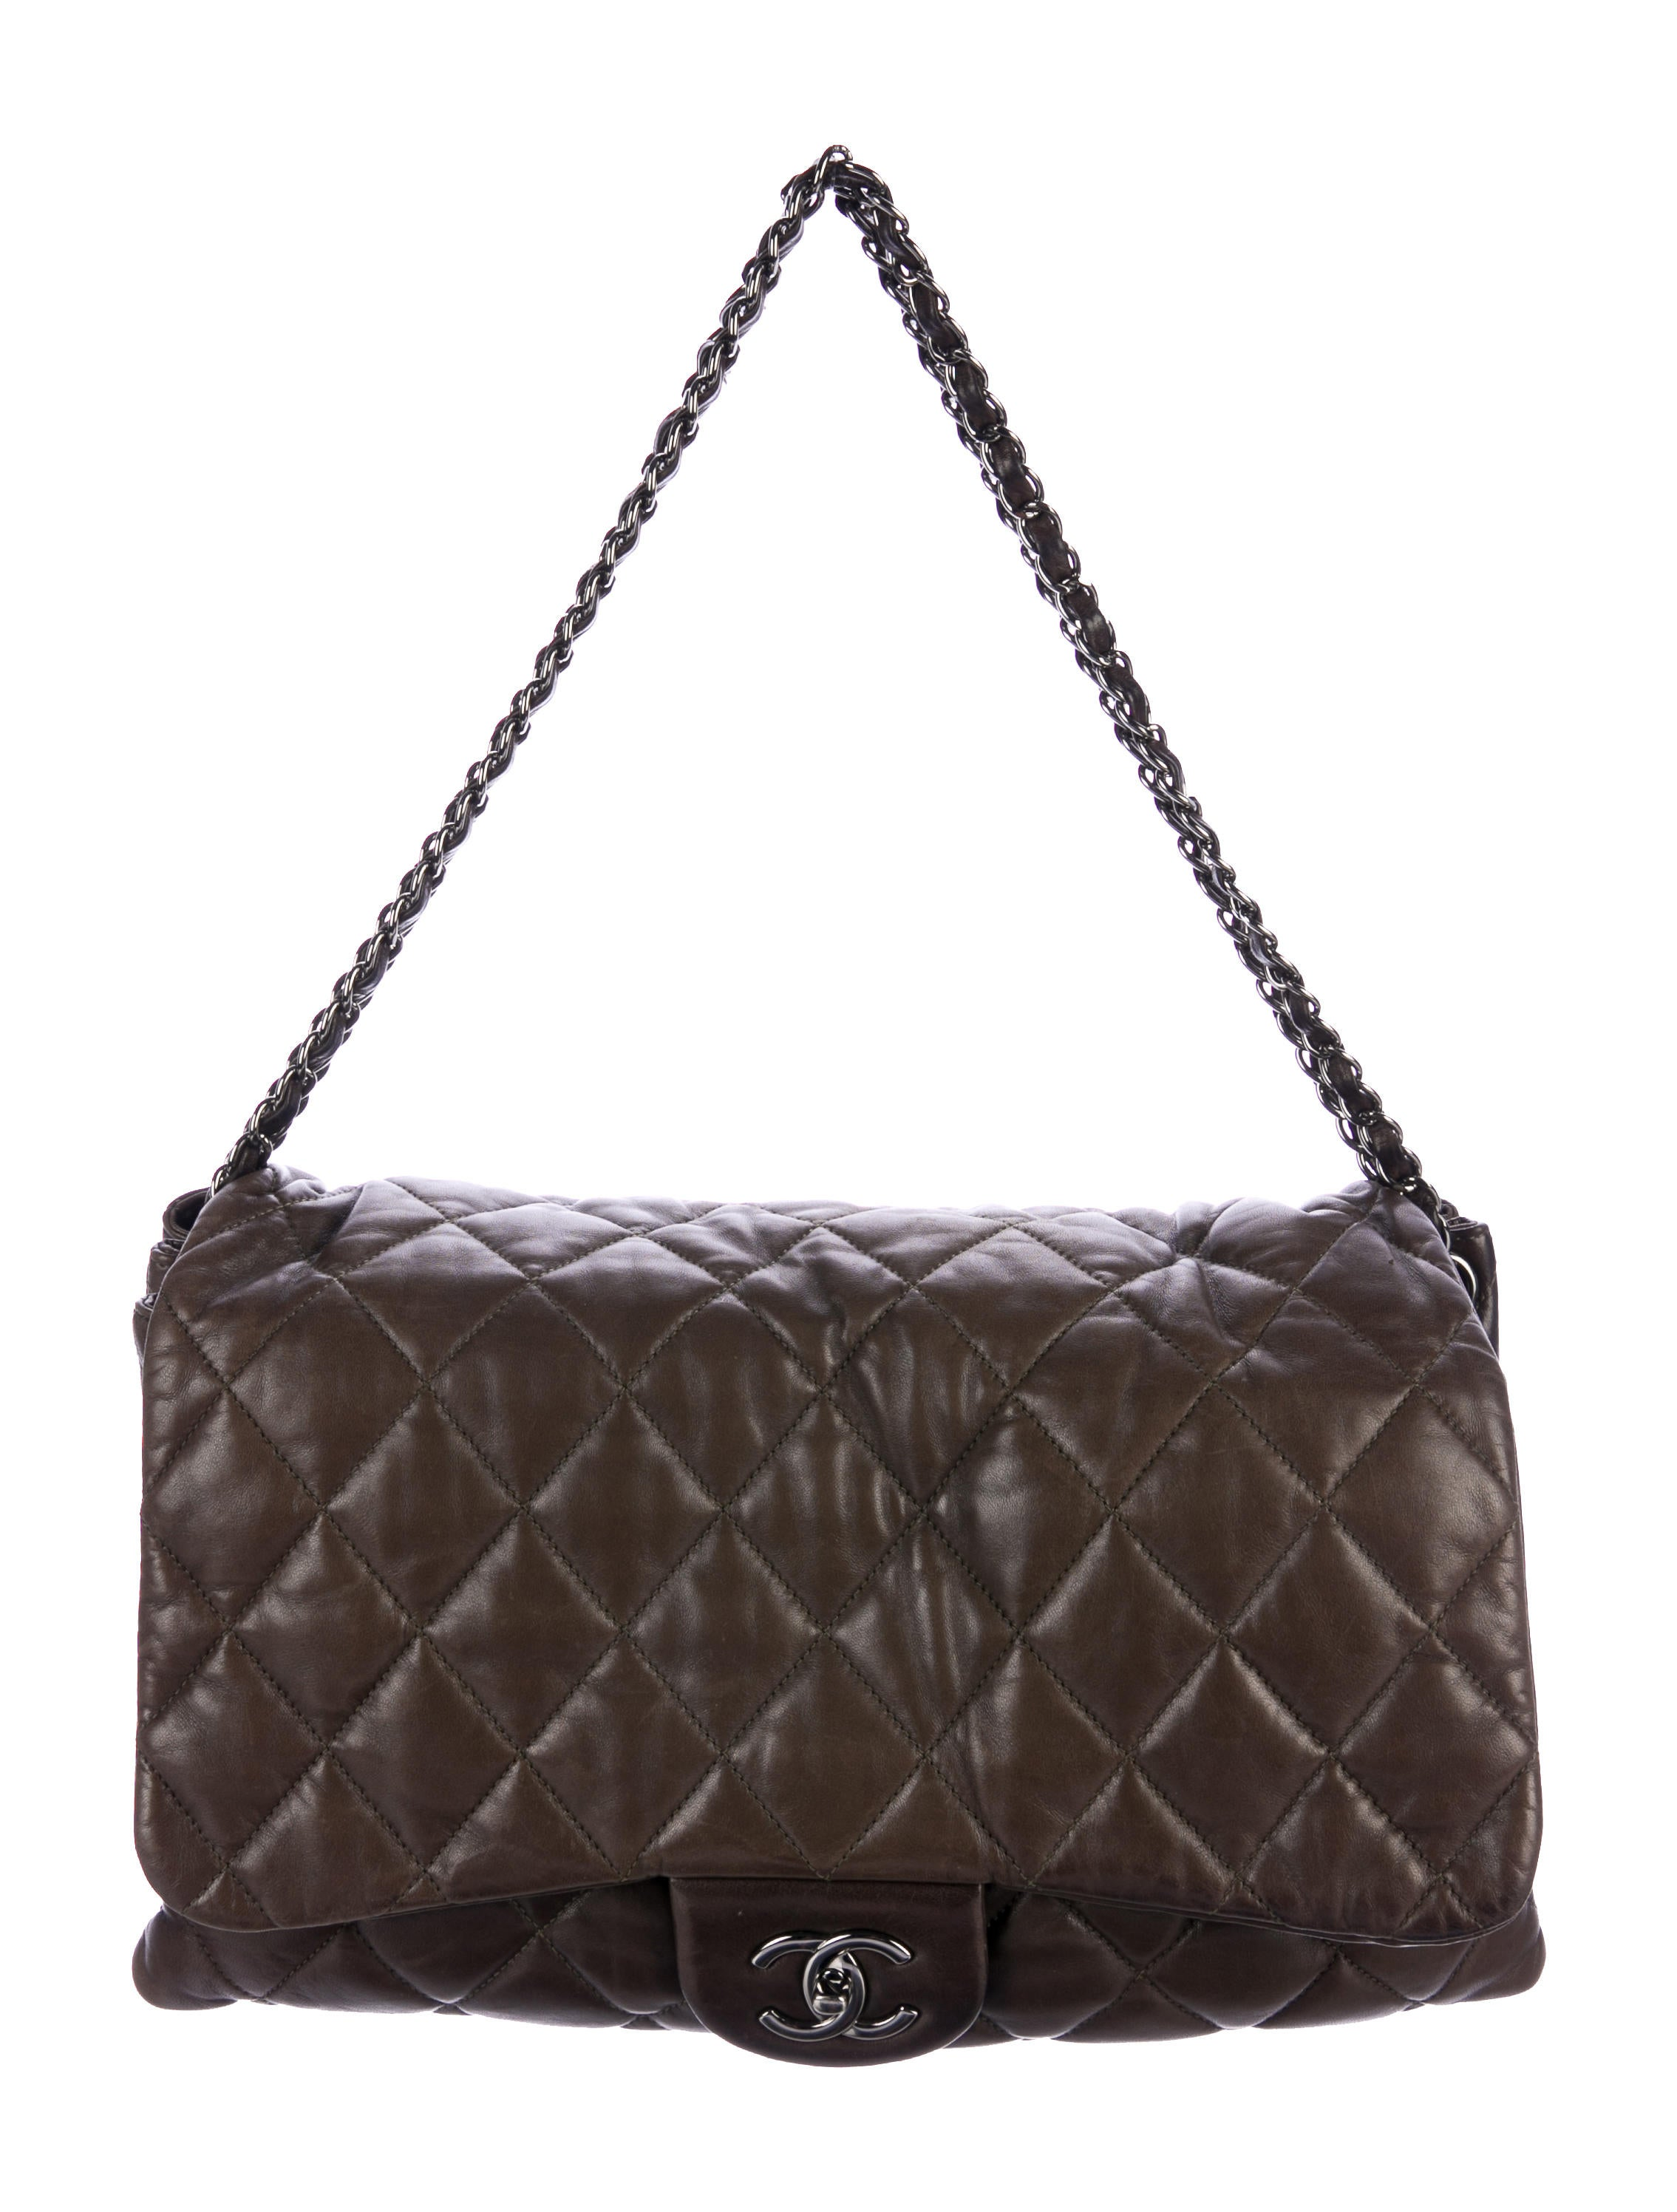 5483d79ee70b Chanel XXL Airline Classic Flap Bag - Handbags - CHA109951 | The ...